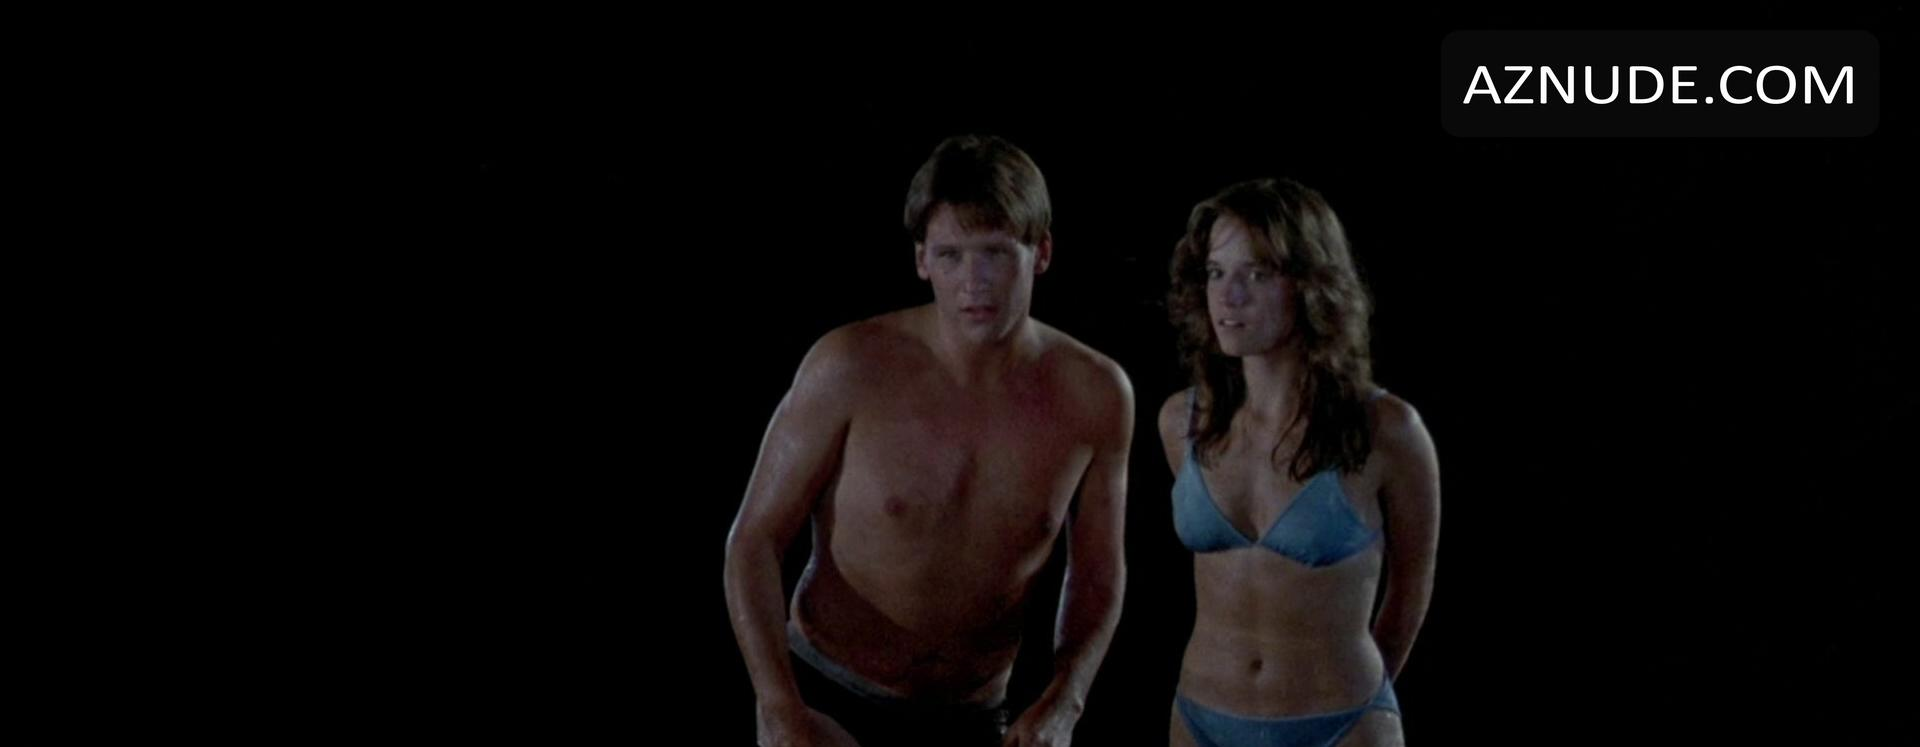 image Lea thompson nude all the right moves hd